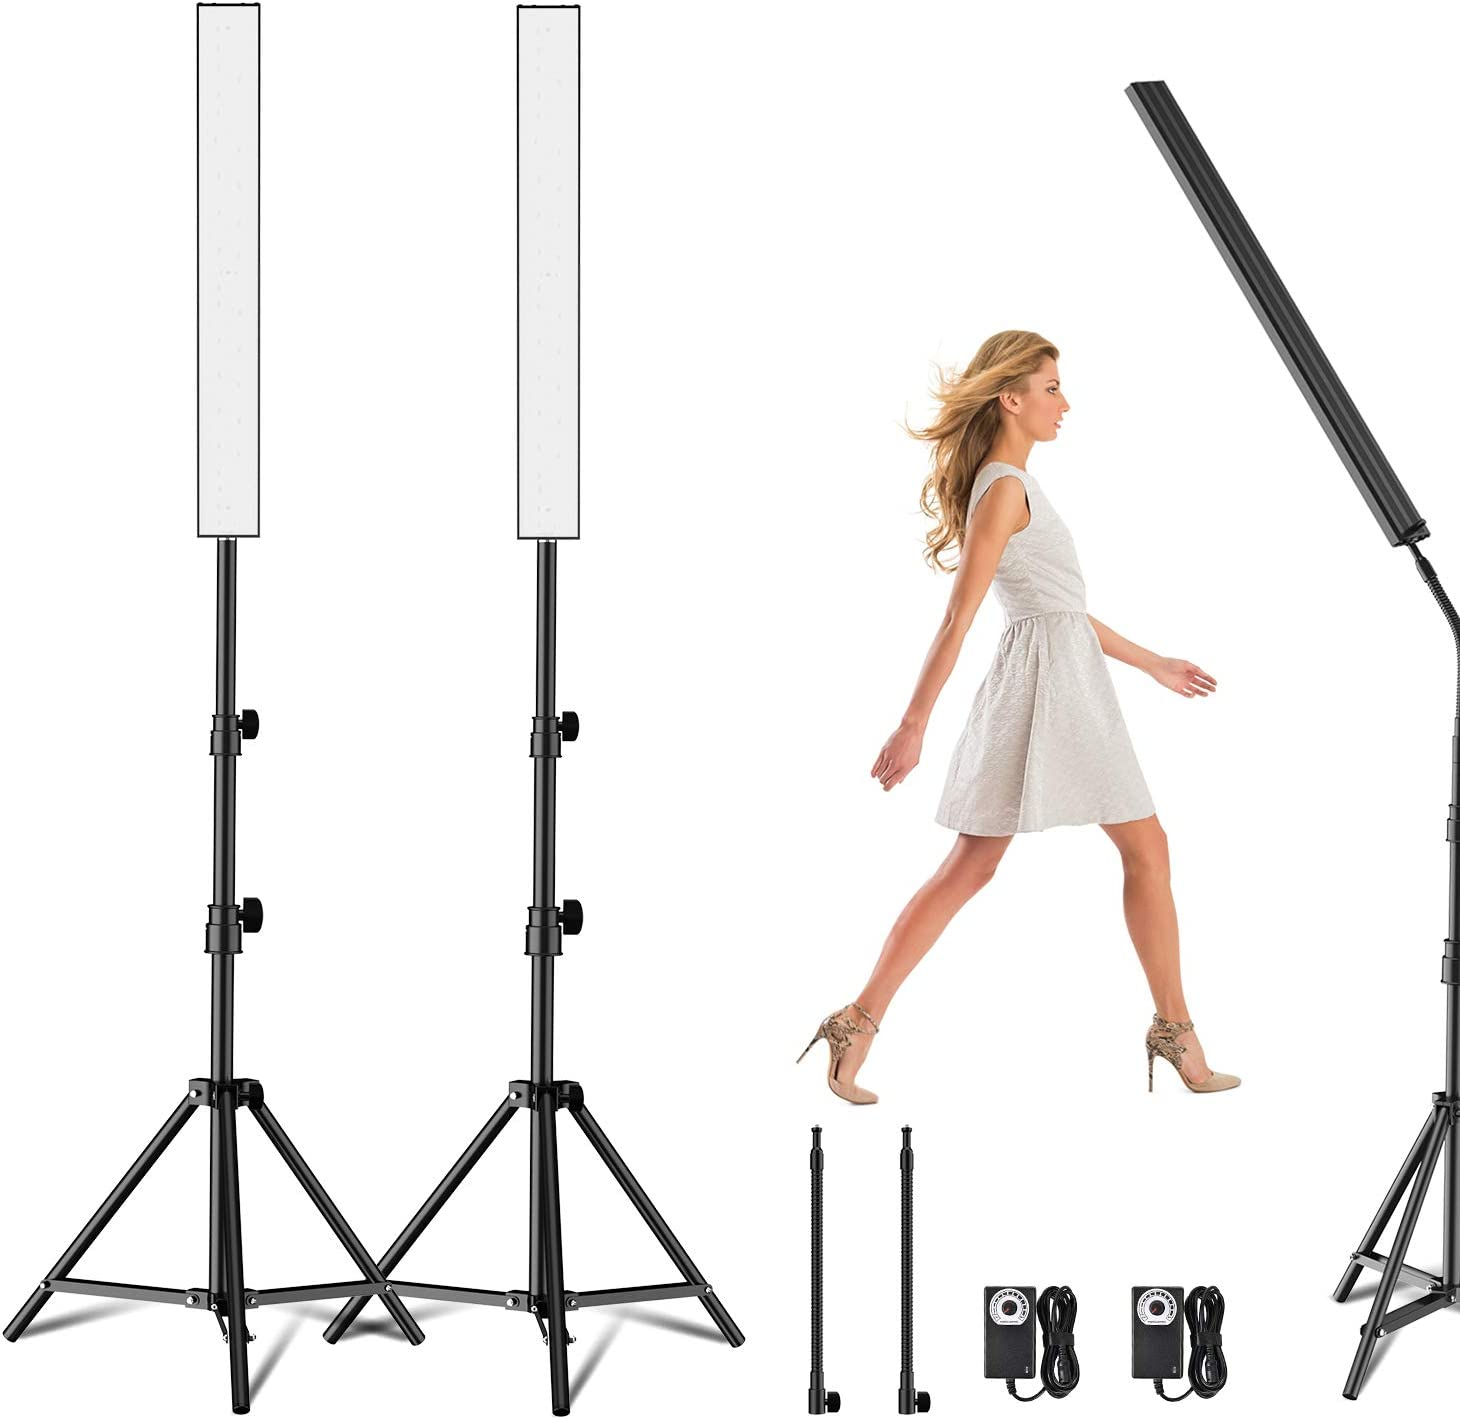 Yesker LED Video Light 2 Packs Dimmable Photography Studio Lighting Kit Color 5500K Adjustable Brightness with Tripod Stand for Camera Video Product Portrait Live Stream Shooting